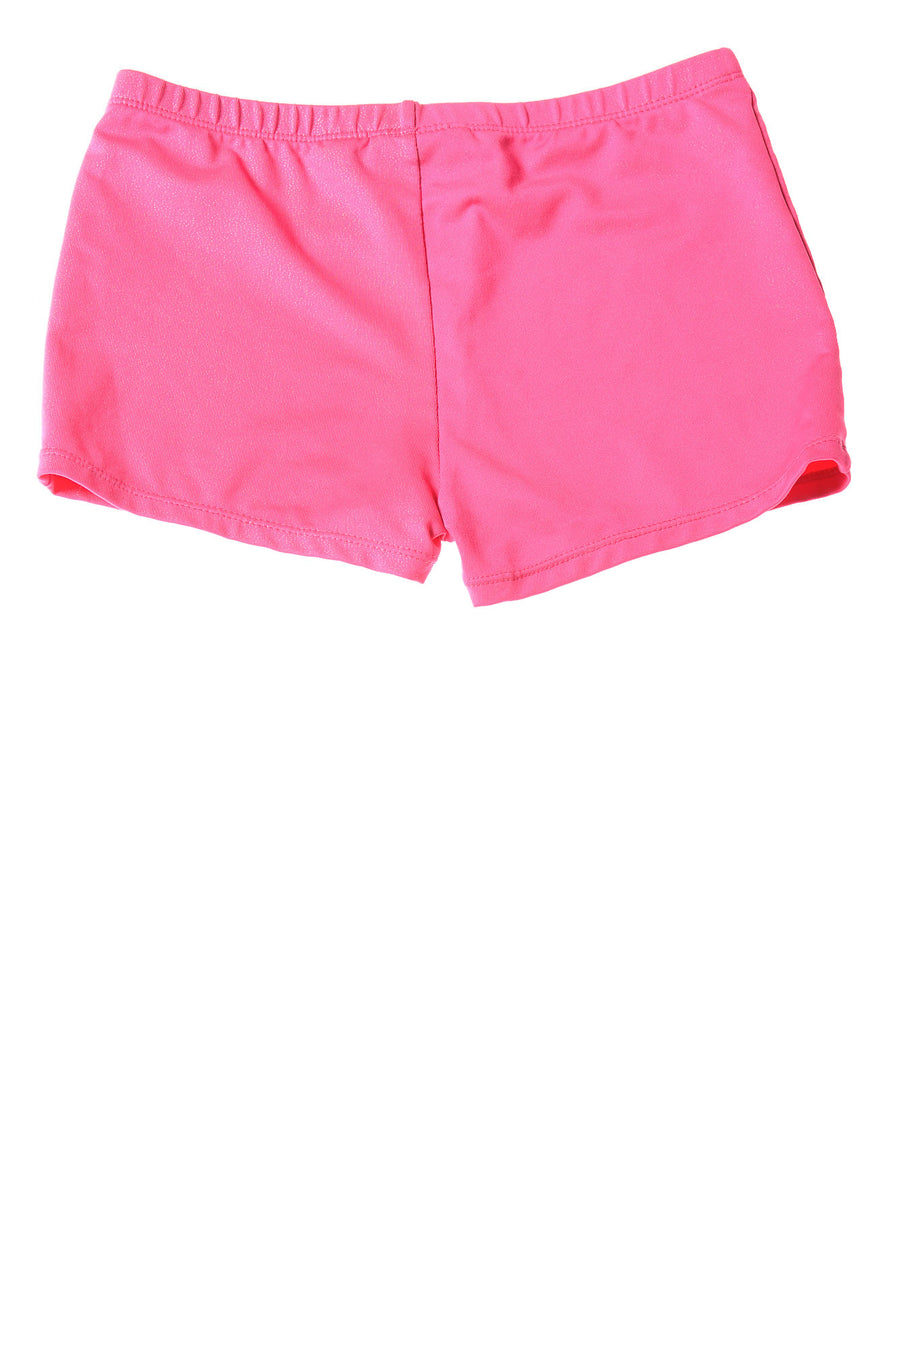 USED Danskin Girl's Shorts 10-12 Pink